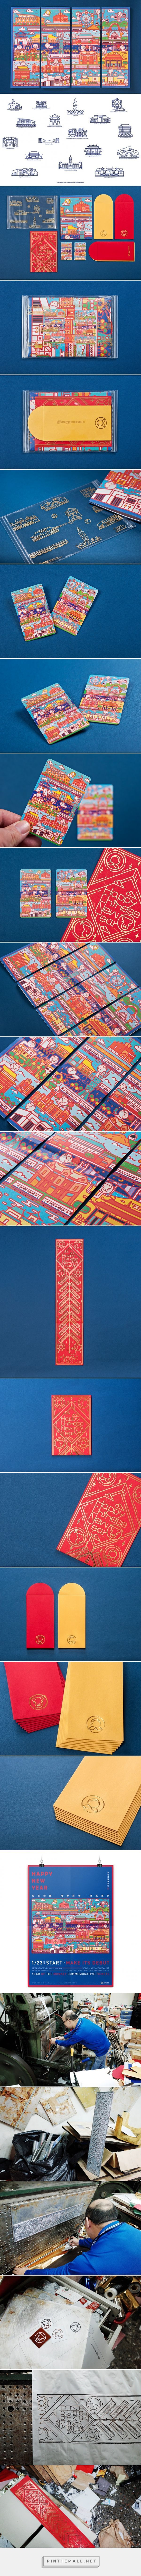 Year of the Monkey Commemorative Tickets Redpacket by Kuocheng Liao & Midnight Design (Taiwan)